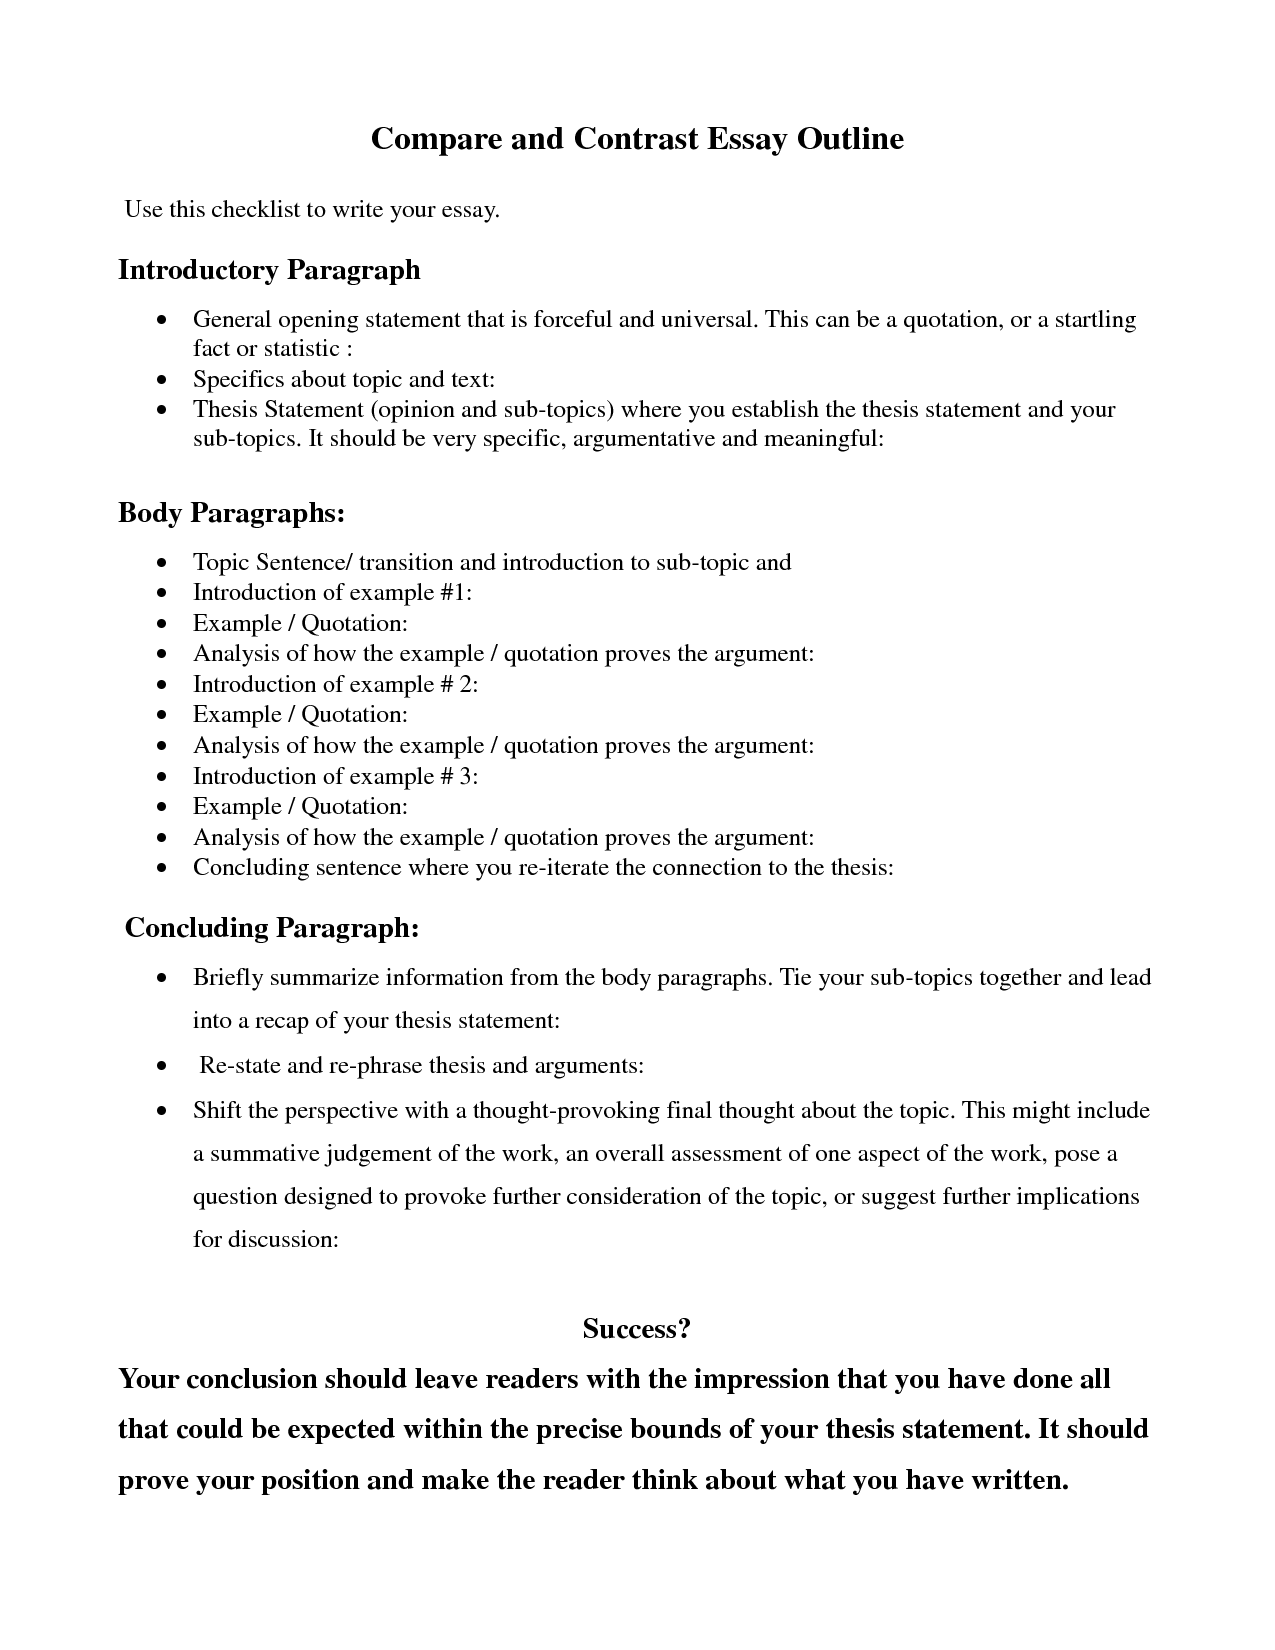 contrast comparison essay outline If you need a good comparison essay example to there are two ways of structuring a compare/contrast essay: create an outline and list the key things to compare.